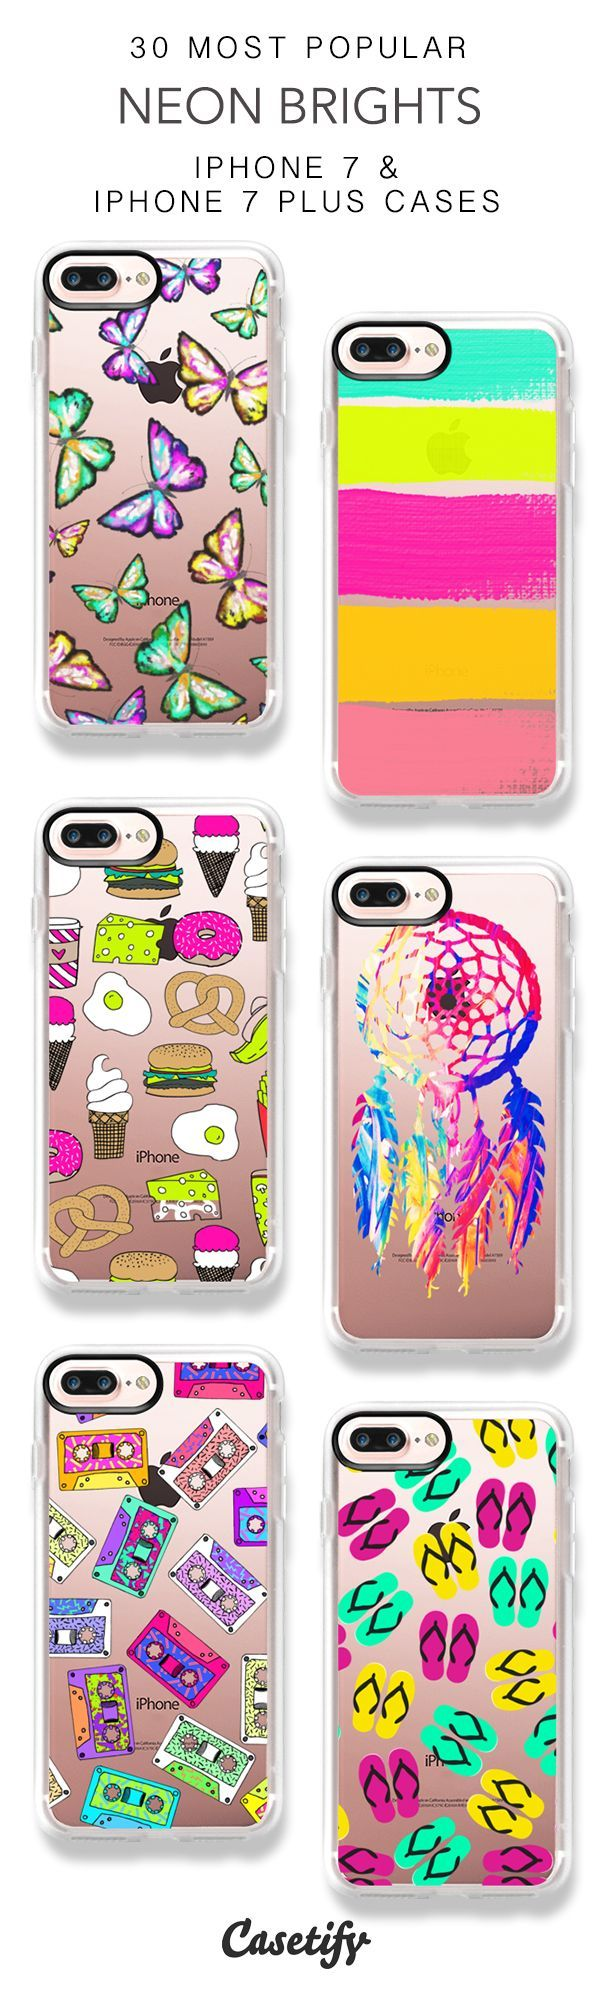 30 Most Popular Neon Brights iPhone 7 Cases and iPhone 7 Plus Cases. More Colorf...